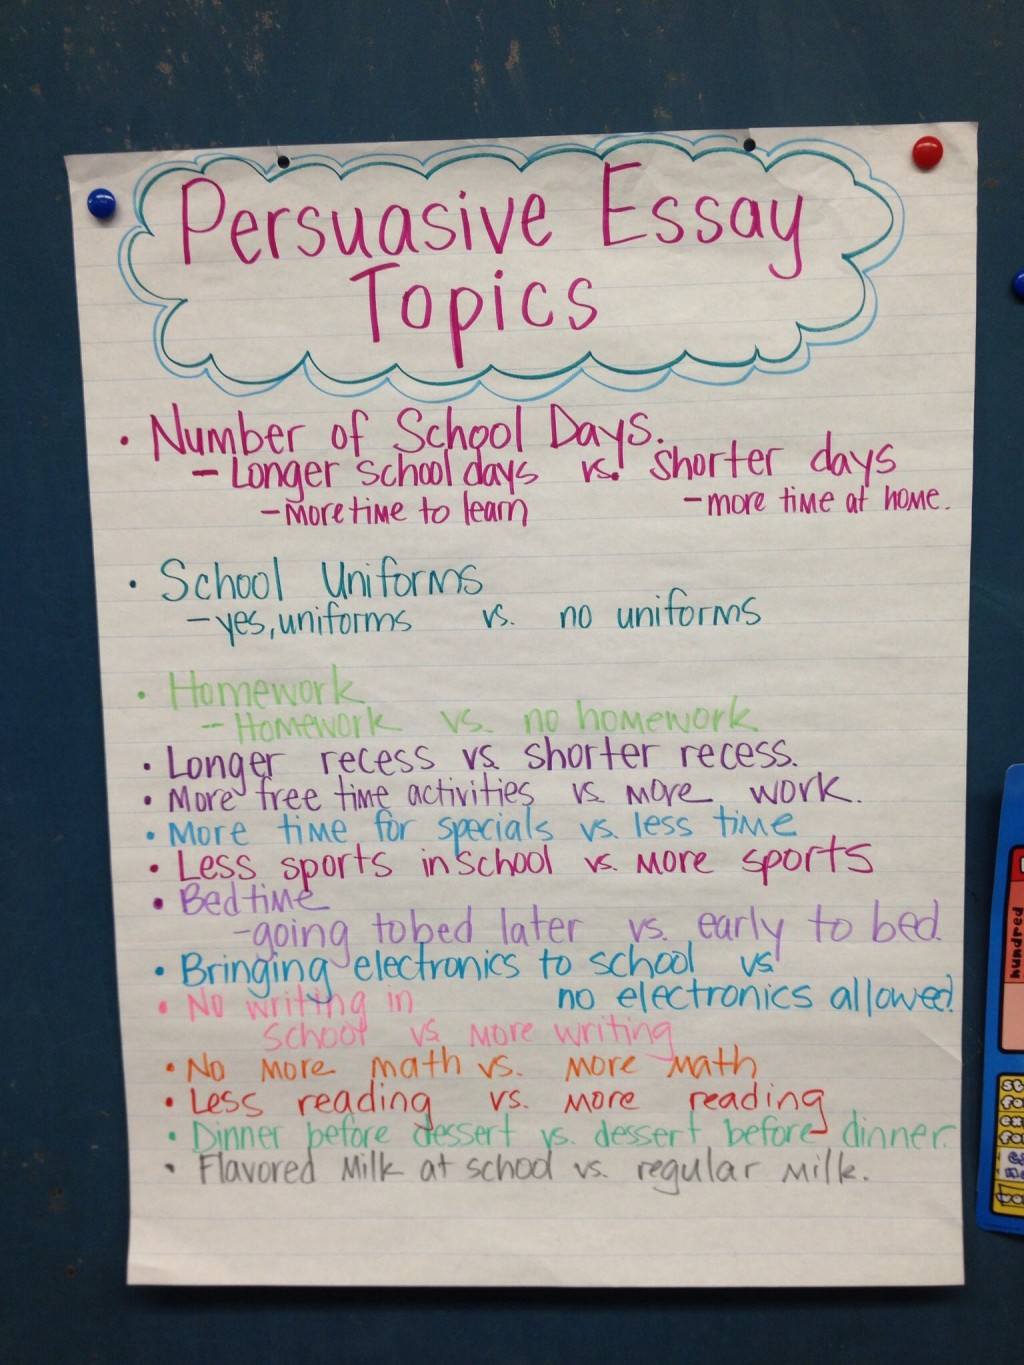 003 Ideas For Persuasive Essays Essay Example Stunning 4th Grade Prompts Middle School Uk Large